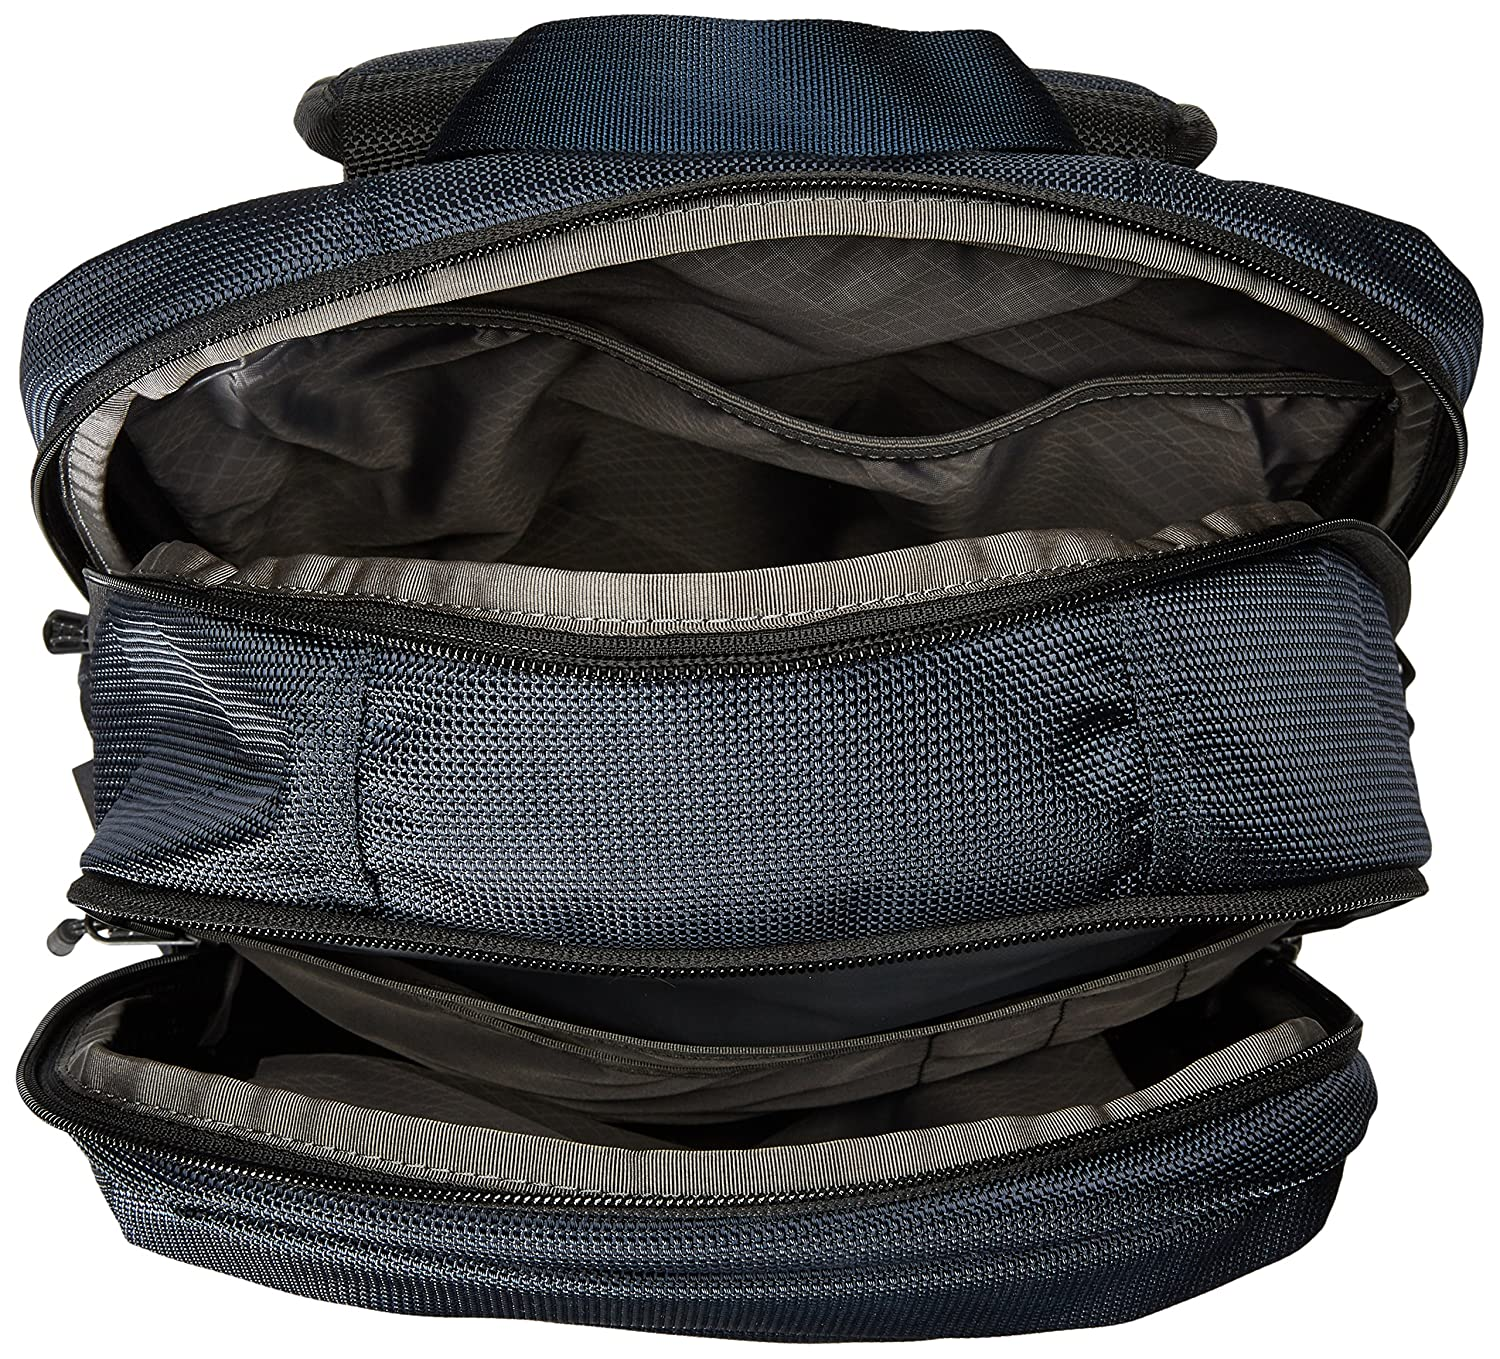 69a3f9a44bcc Timbuk2 Abyss Parkside Backpack  Amazon.ca  Sports   Outdoors